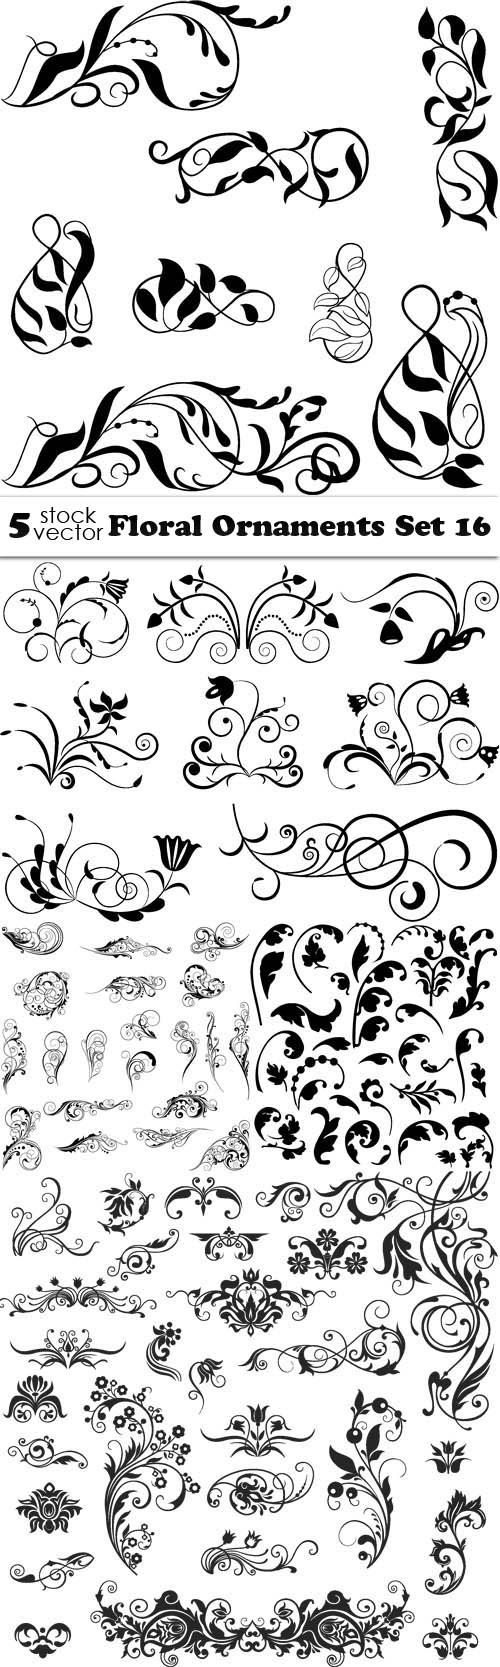 Vectors - Floral Ornaments Set 16